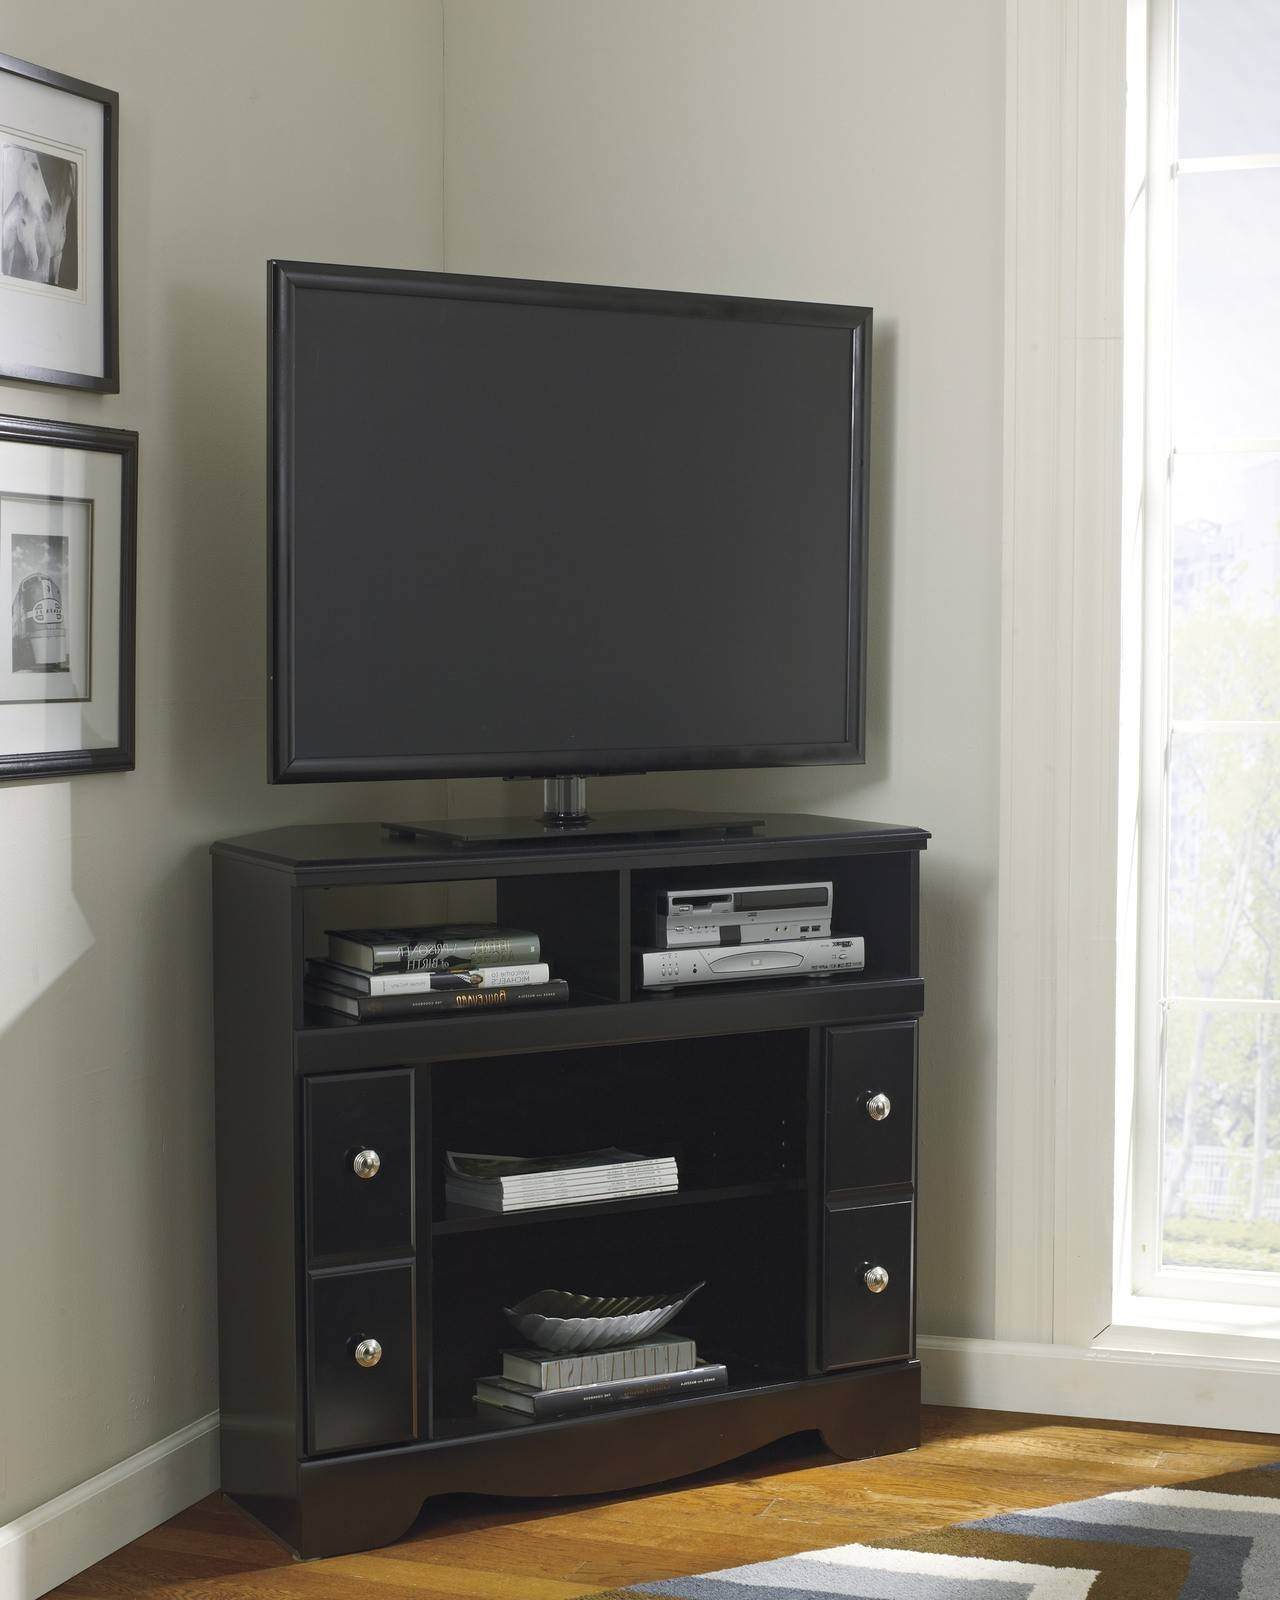 Cornet Tv Stand Cabinet In Black Color With Fireplace Insert With Regard To Cornet Tv Stands (View 3 of 15)